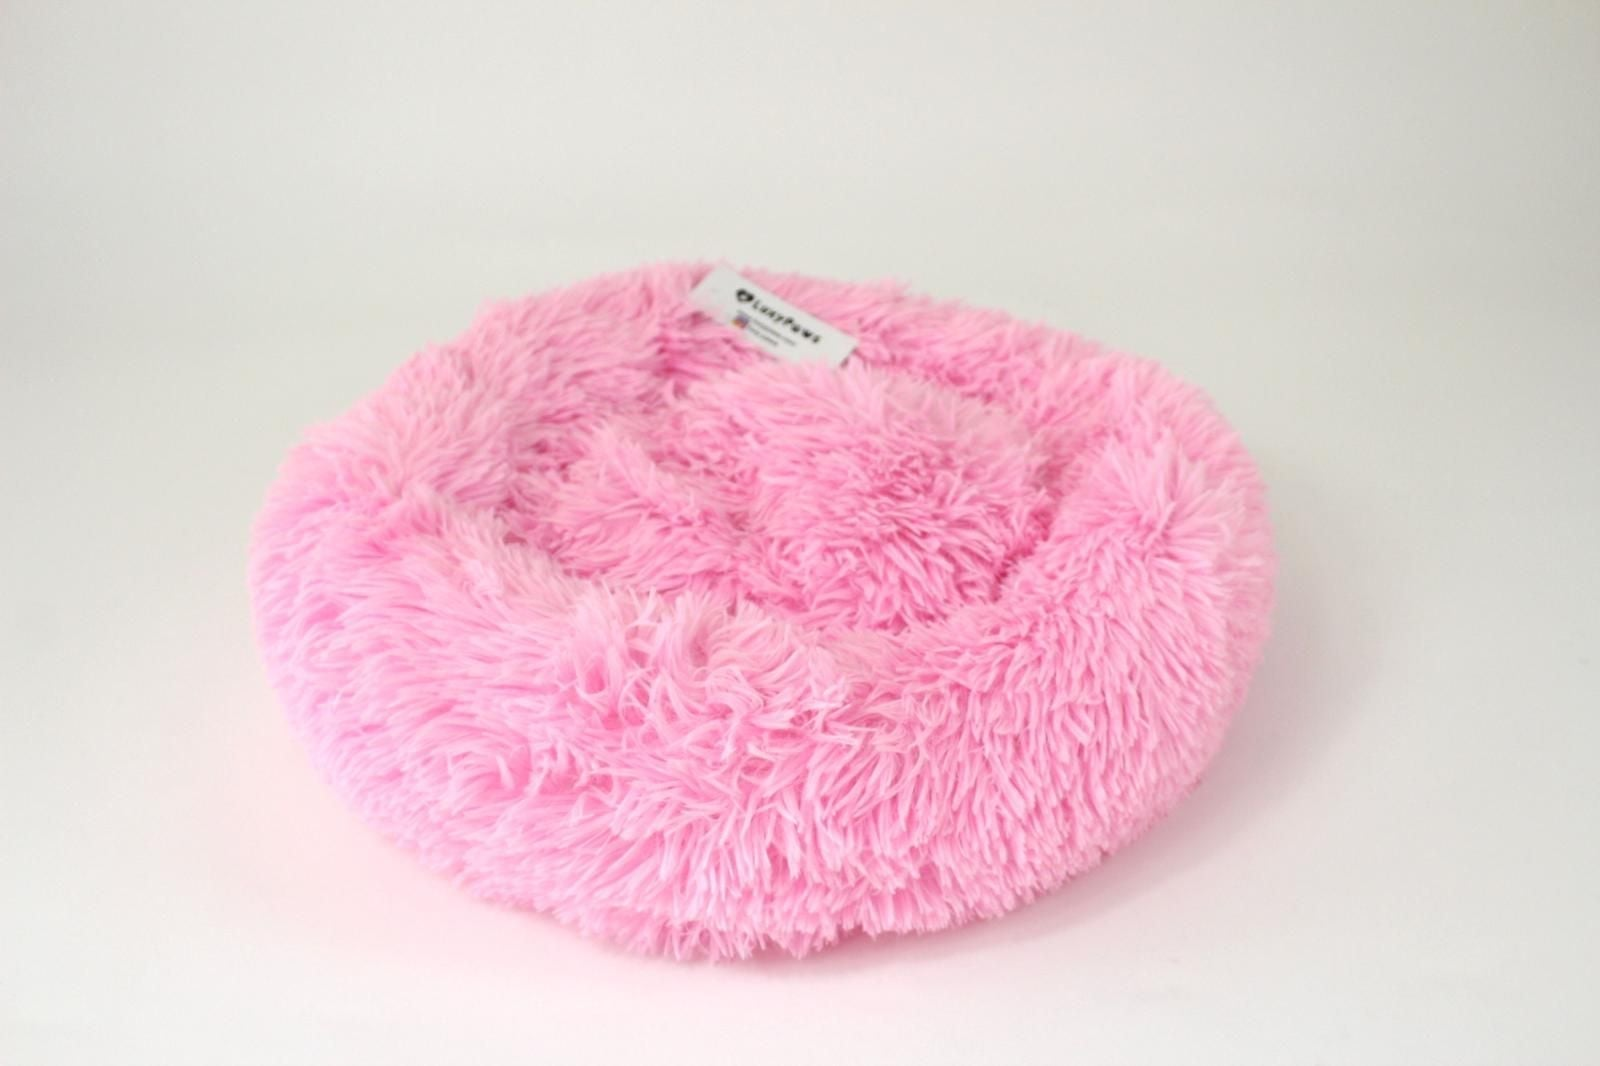 Small Fulffy Dog & Cat beds